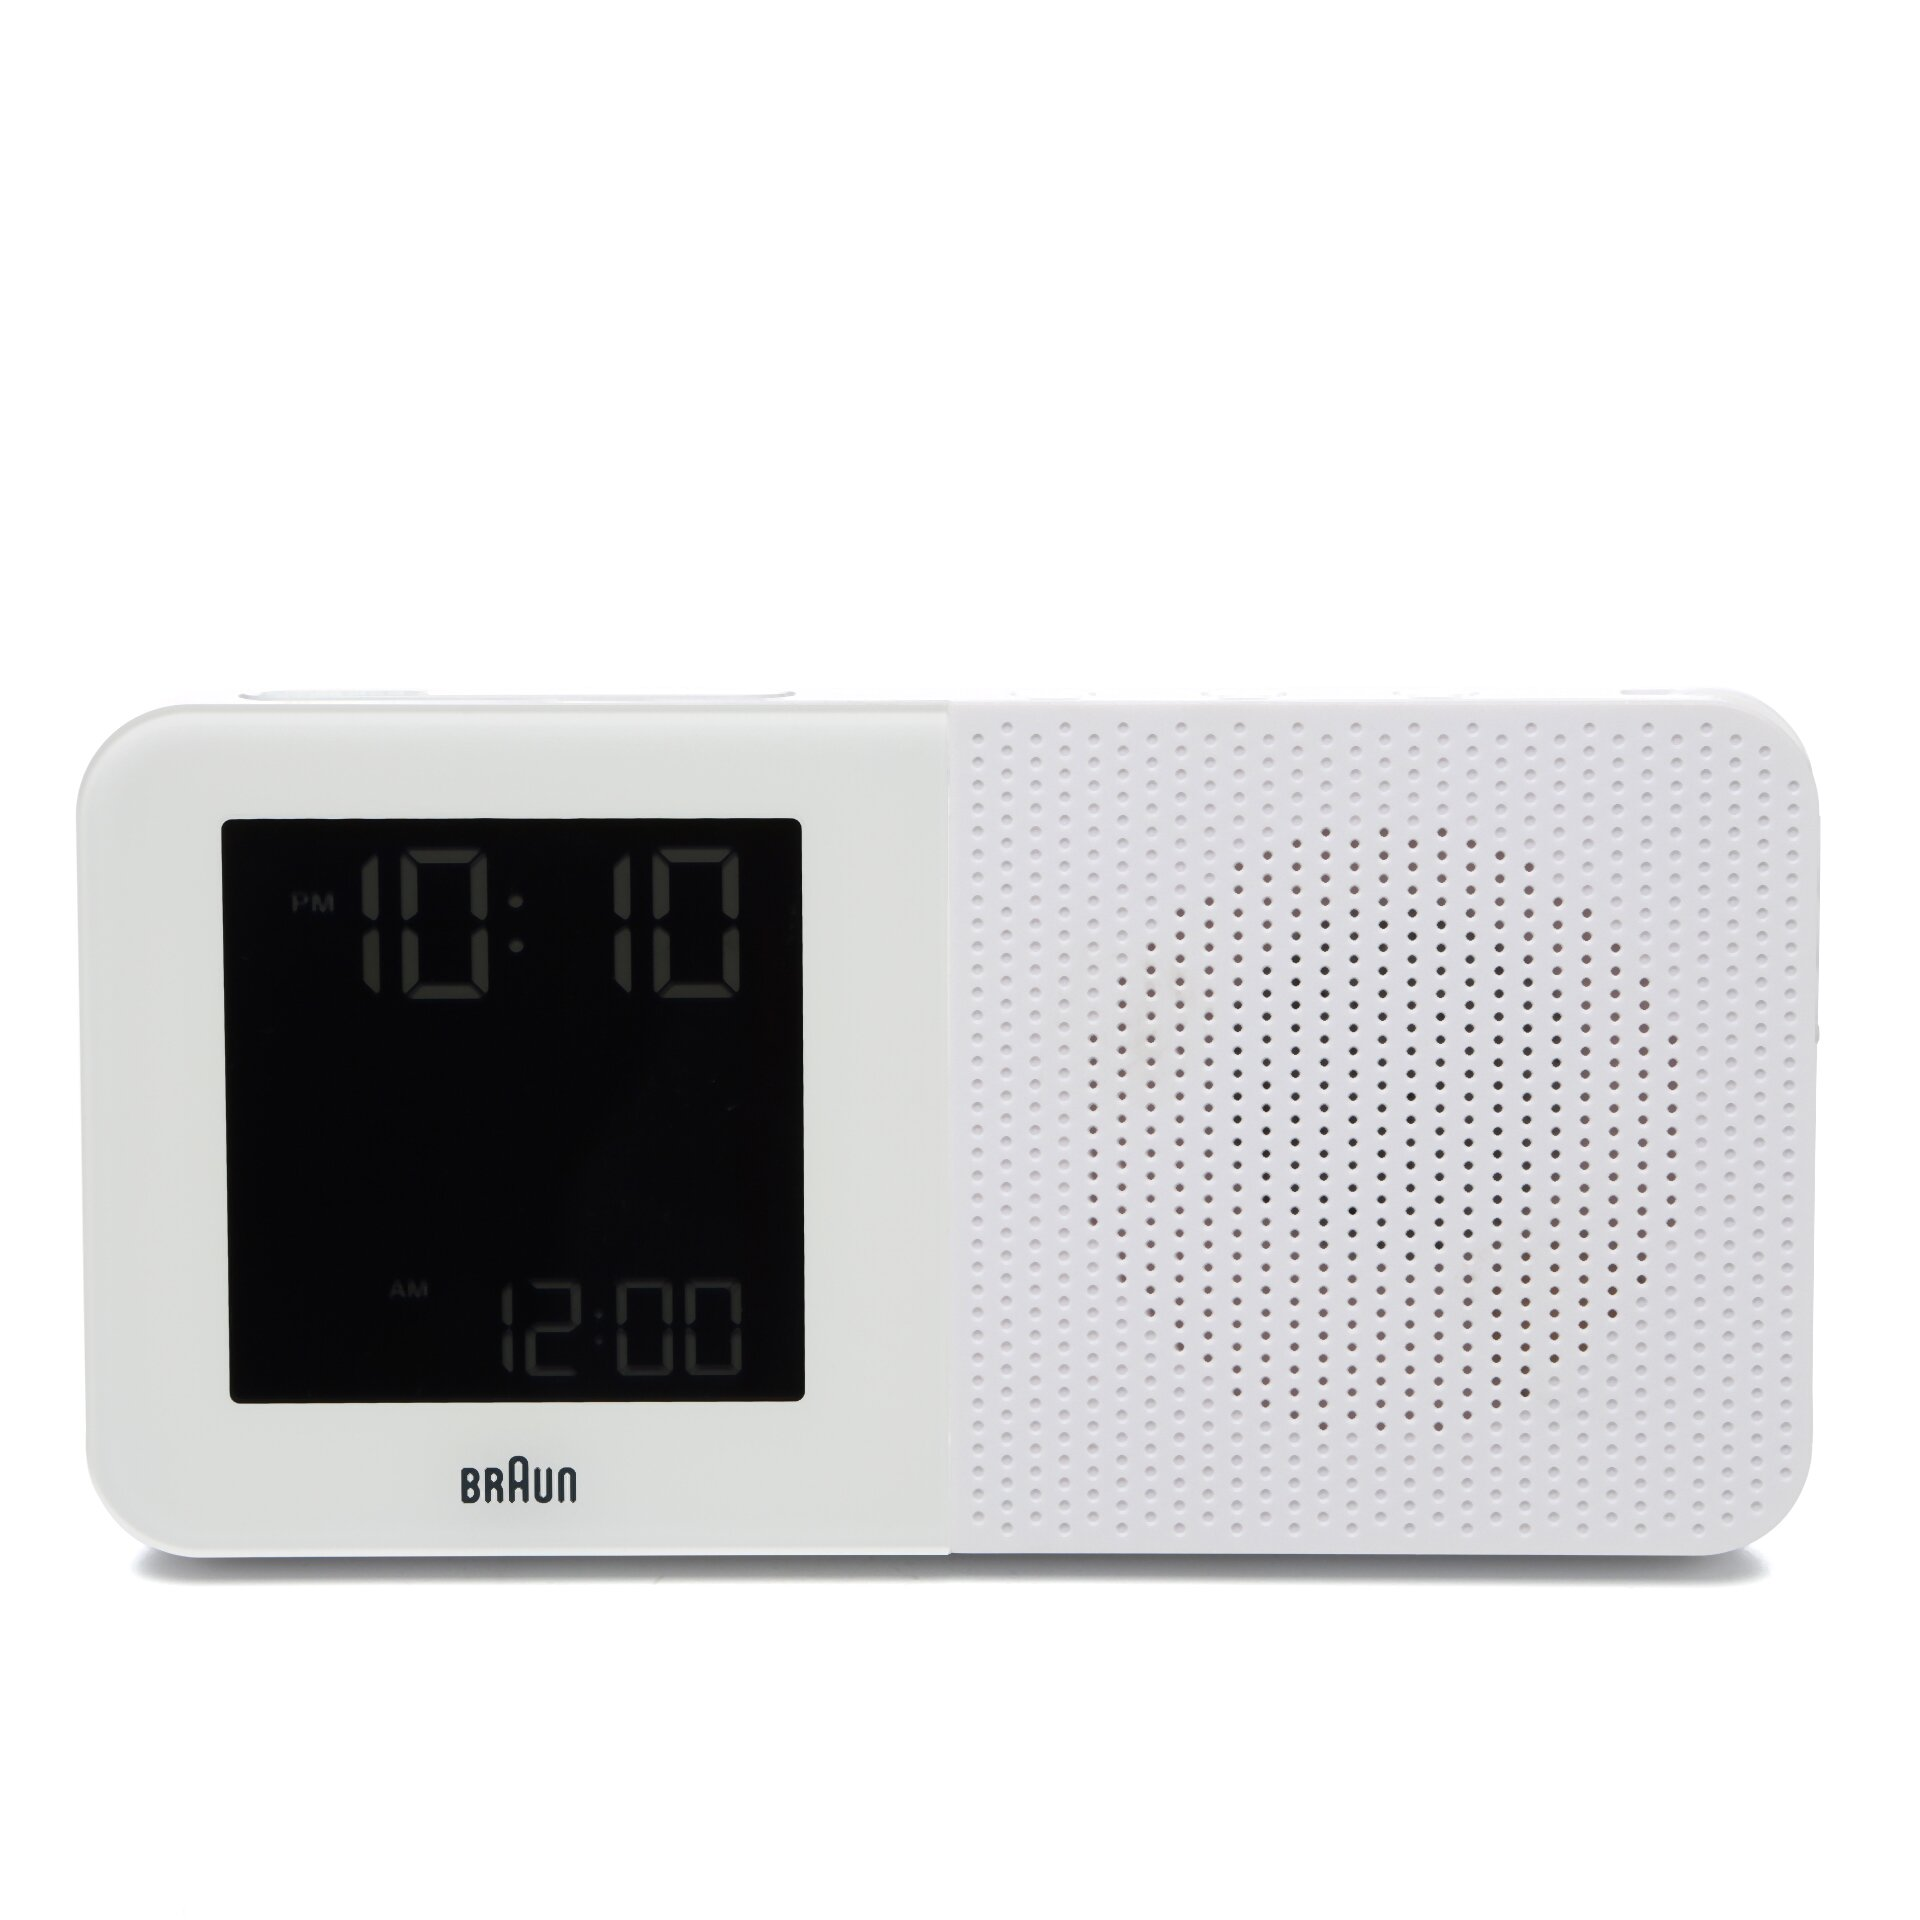 digital radio alarm clock reviews whats the best dab digital radio alarm clock read our reviews. Black Bedroom Furniture Sets. Home Design Ideas